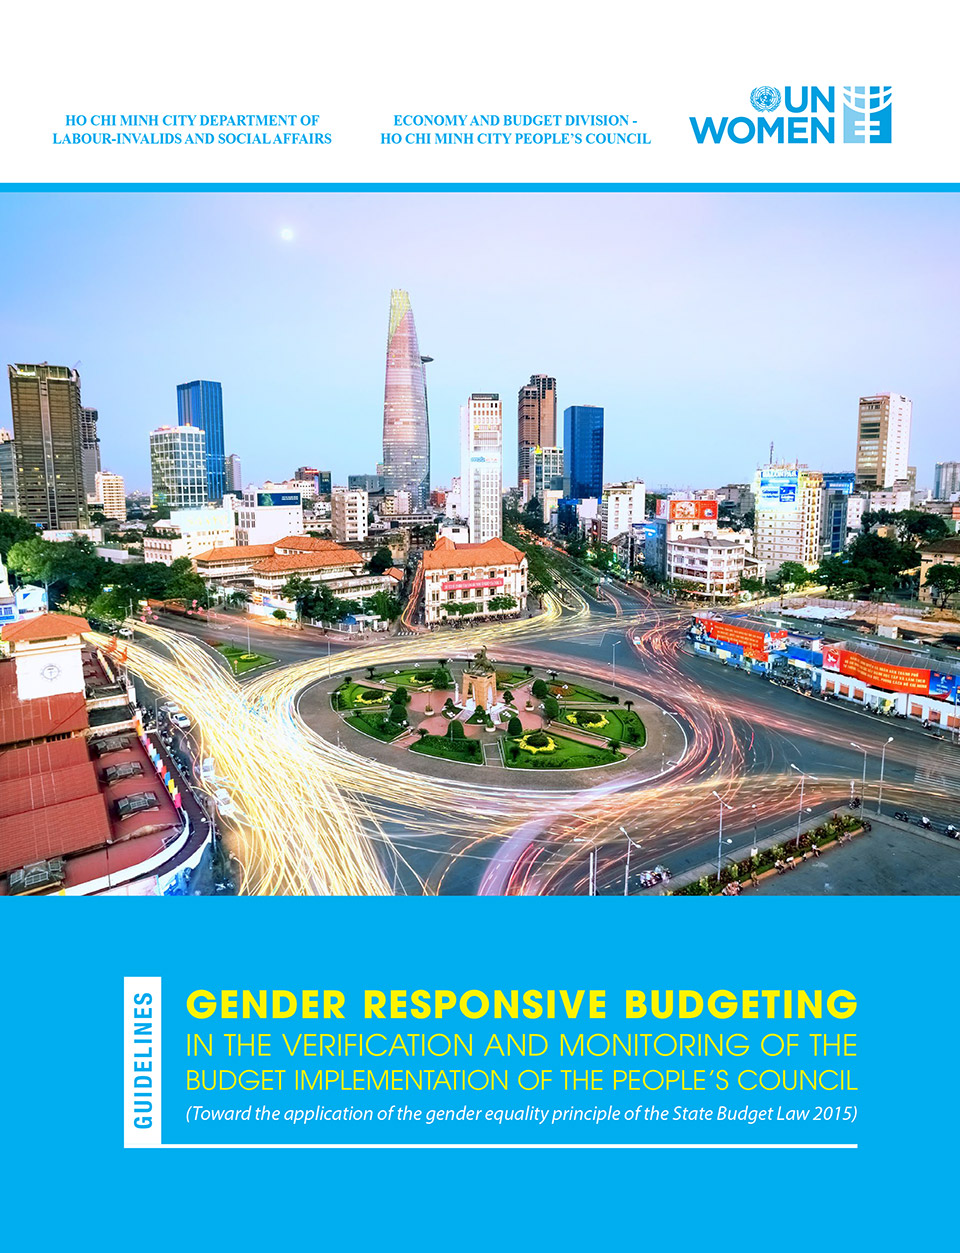 The Guidelines on Gender Responsive Budgeting in the verification and monitoring of budget implementation of the People's Council